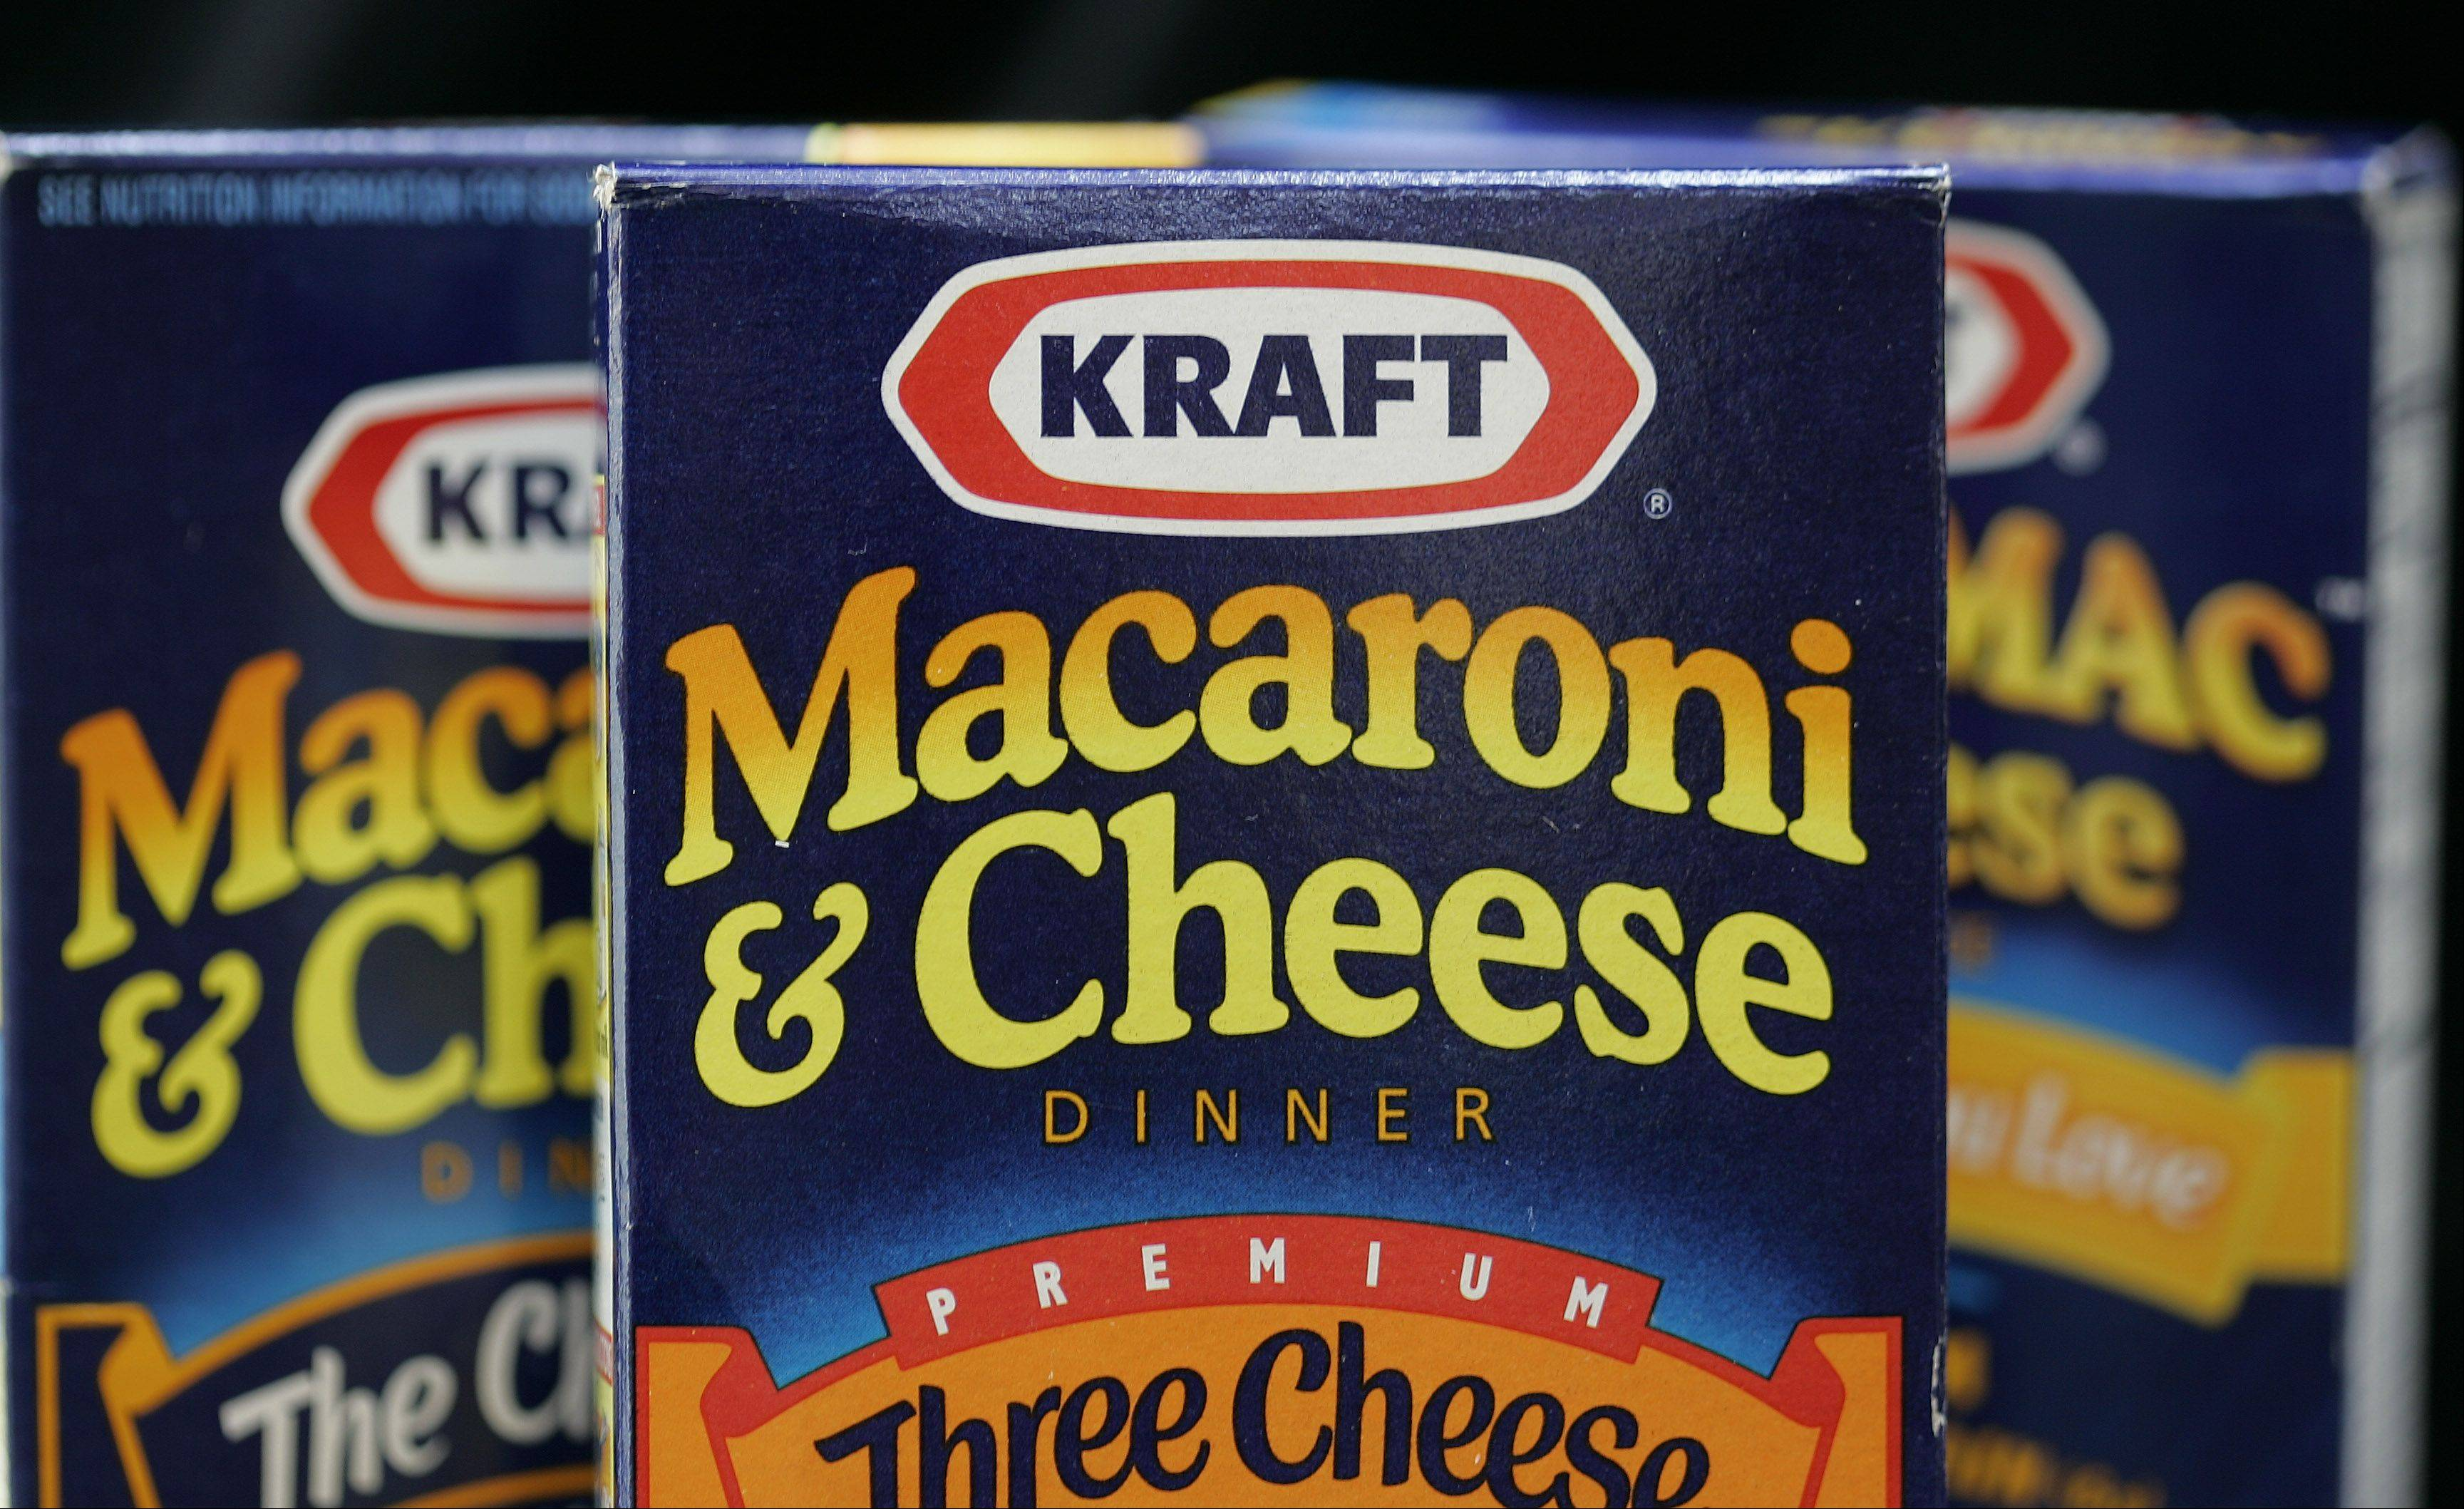 Northfield-based Kraft Foods' net income rose 13 percent in the third quarter, the food maker said Wednesday, as new products and increased advertising helped it top Wall Street expectations.